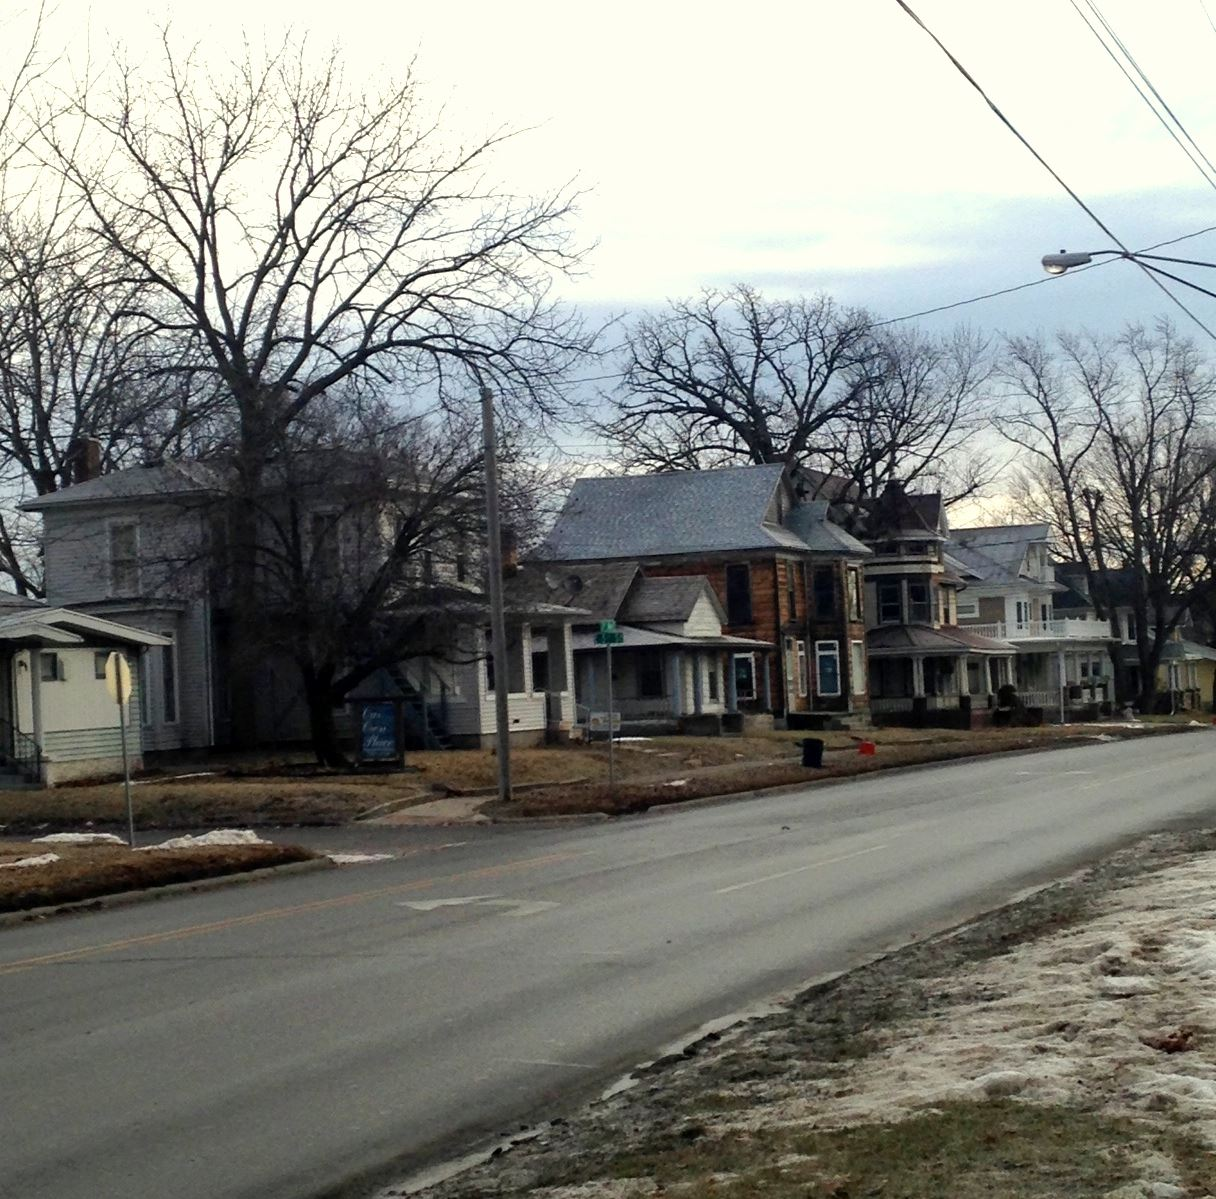 Residential Historic Districts